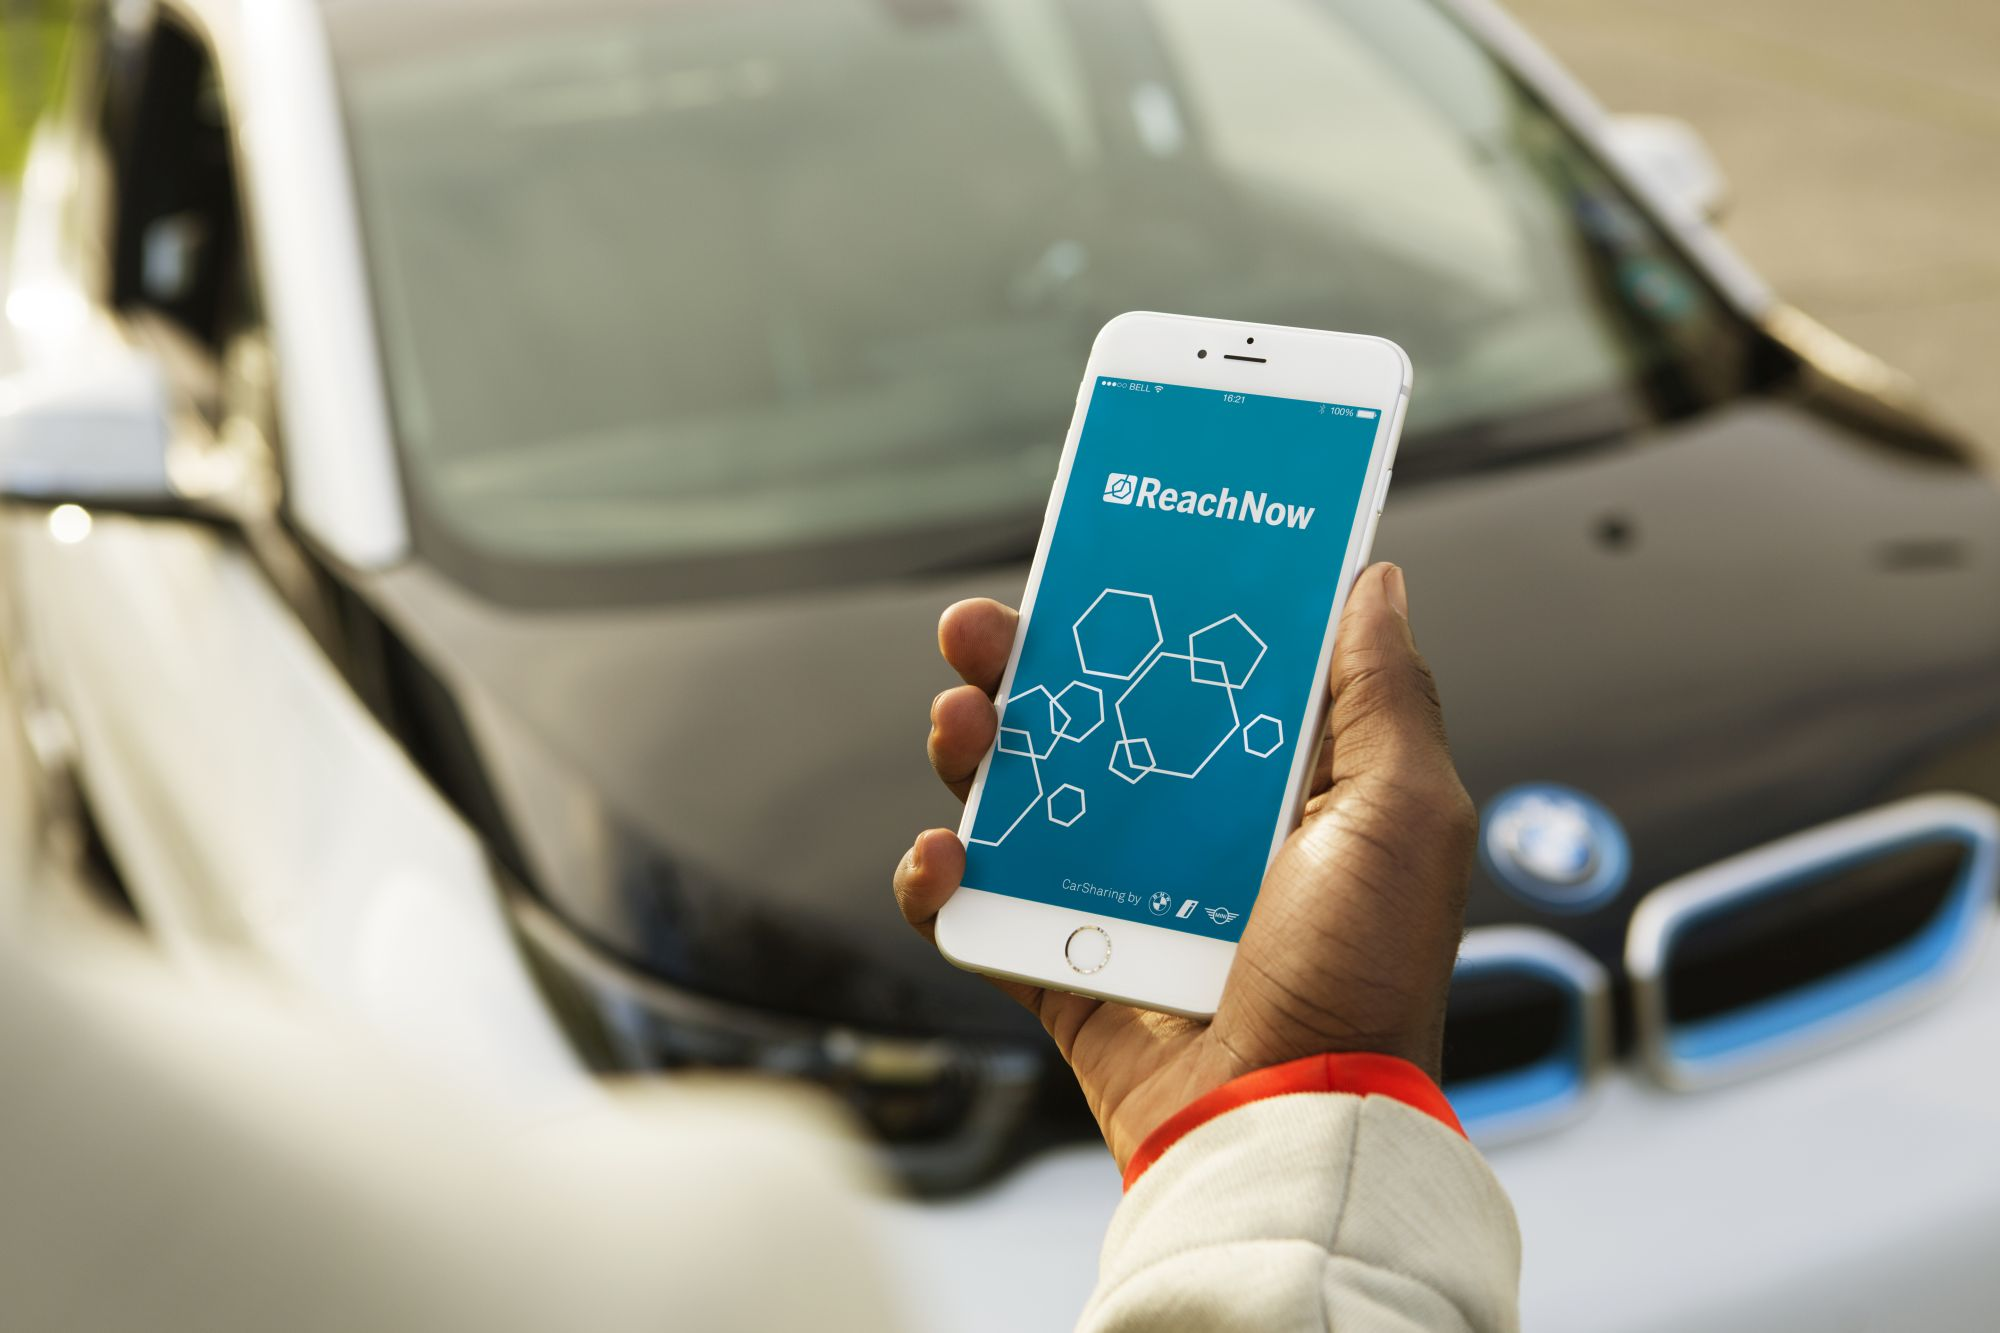 Bmw Launches New Car Sharing Service Reachnow In Seattle Gate To